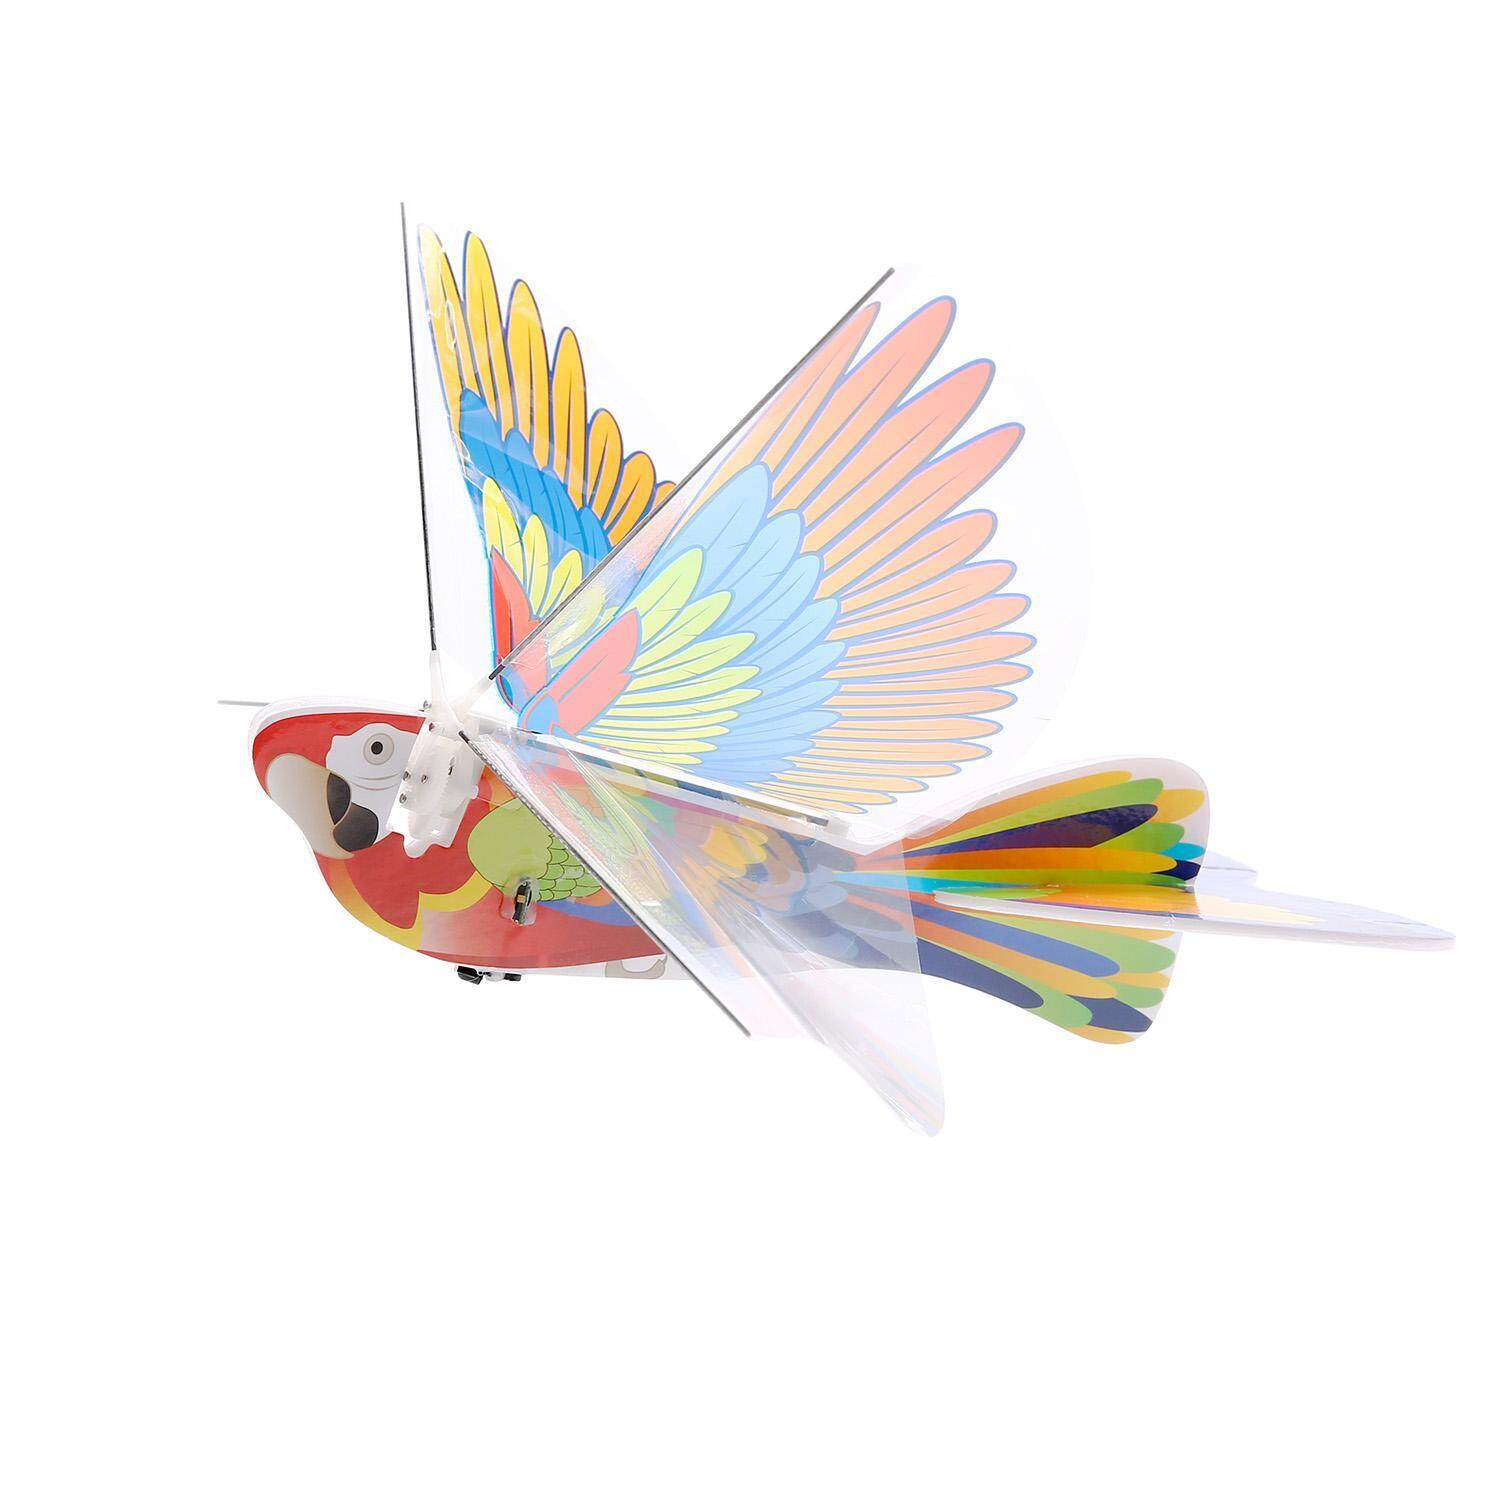 leegoal Parrot Electric Motor Paper Airplane Model Outdoor Play DIY Power Up Flying Plane